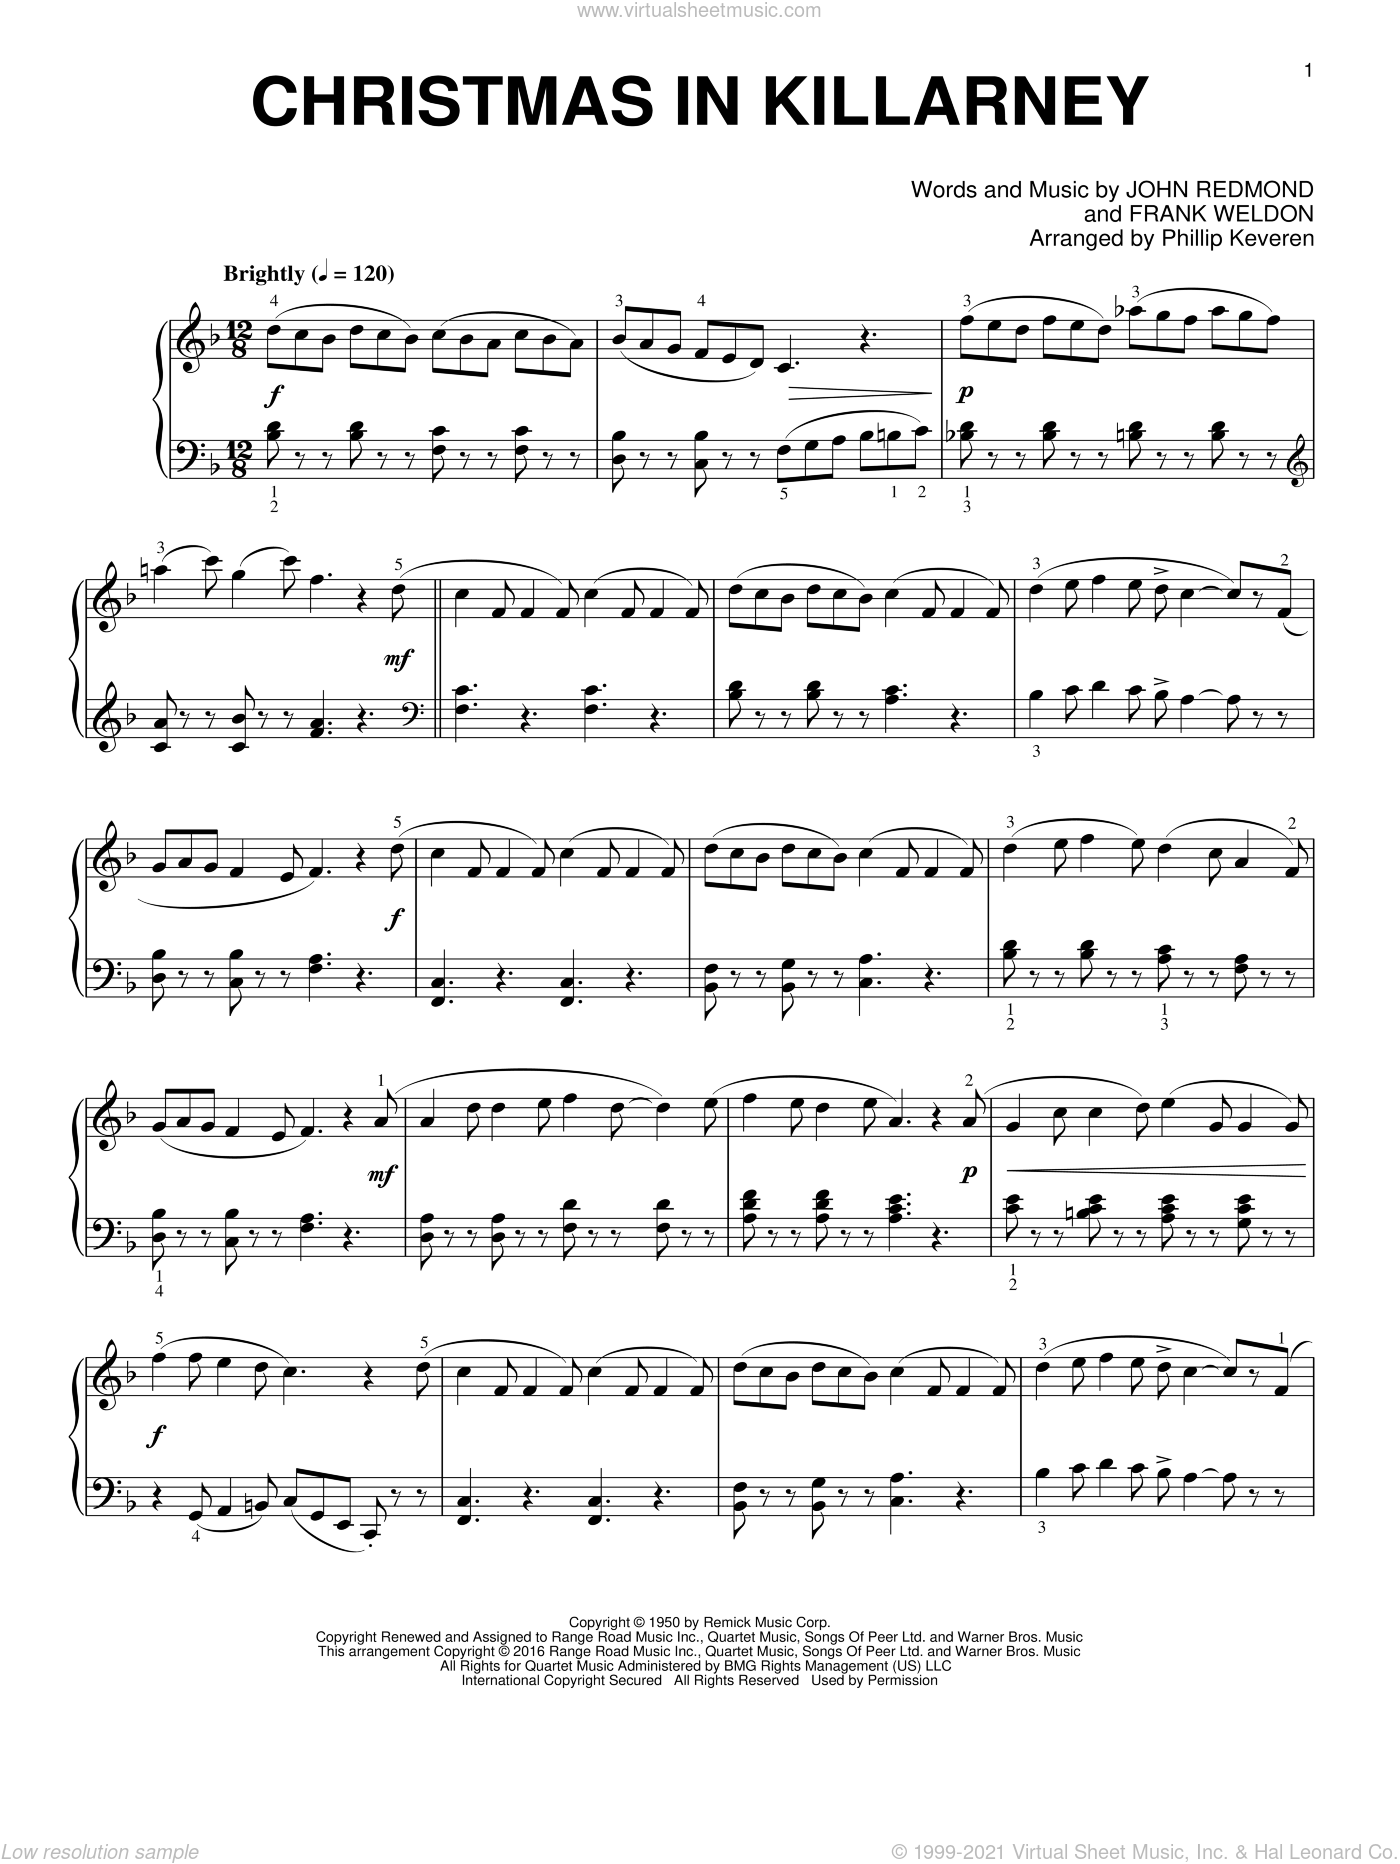 Christmas In Killarney sheet music for piano solo by Frank Weldon, Phillip Keveren and John Redmond. Score Image Preview.